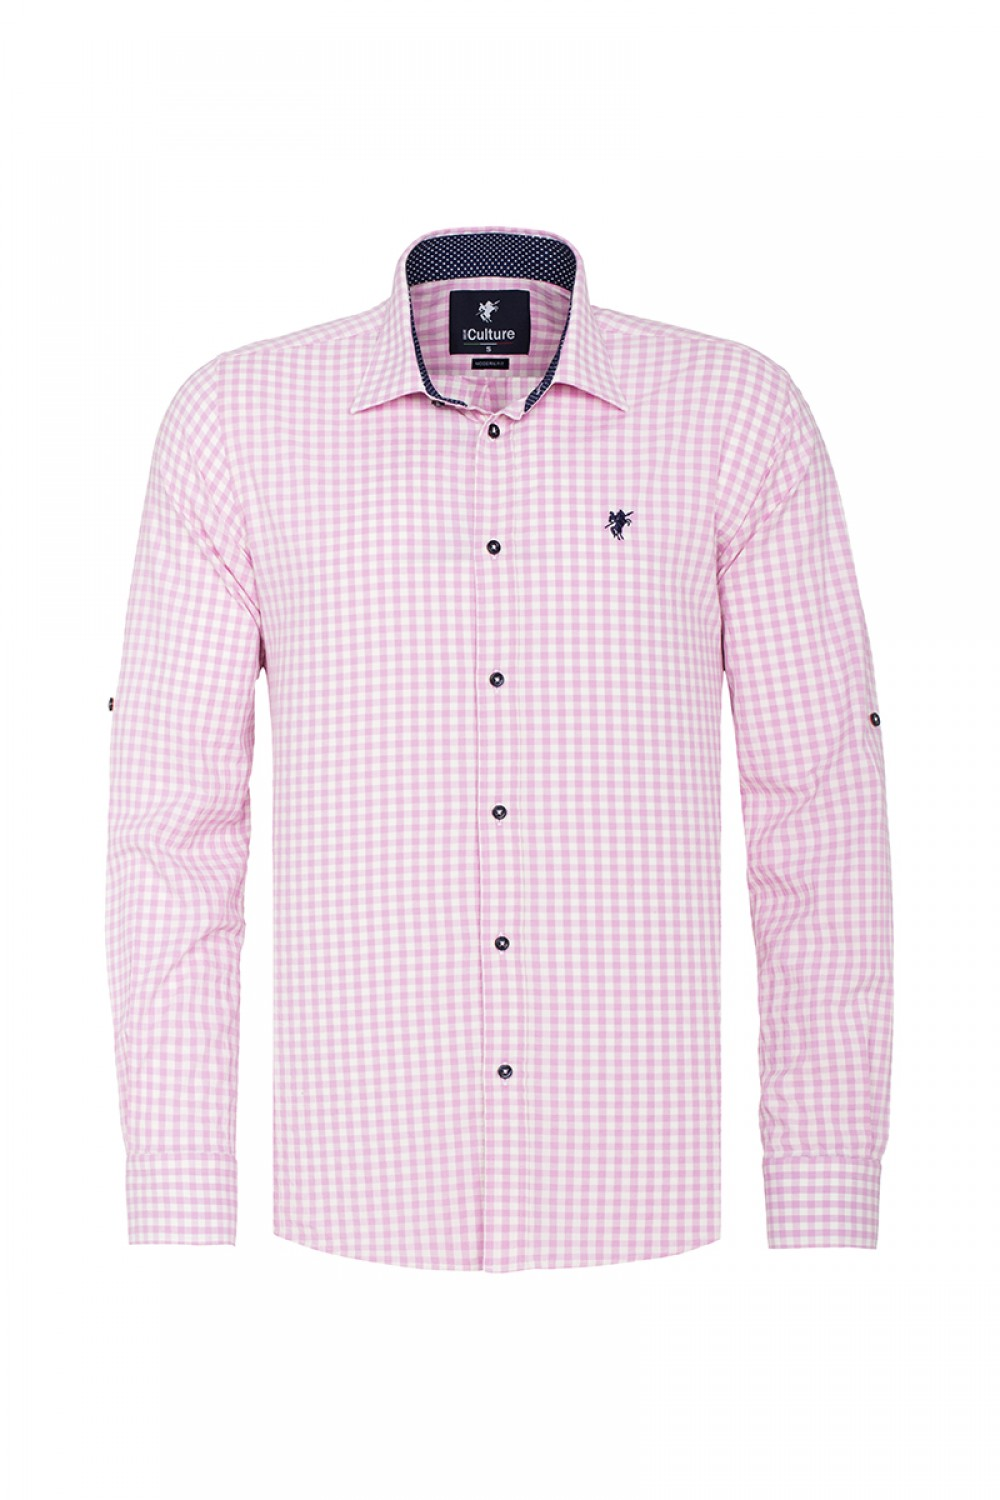 Men's Shirt Kent Collar Pink Checked